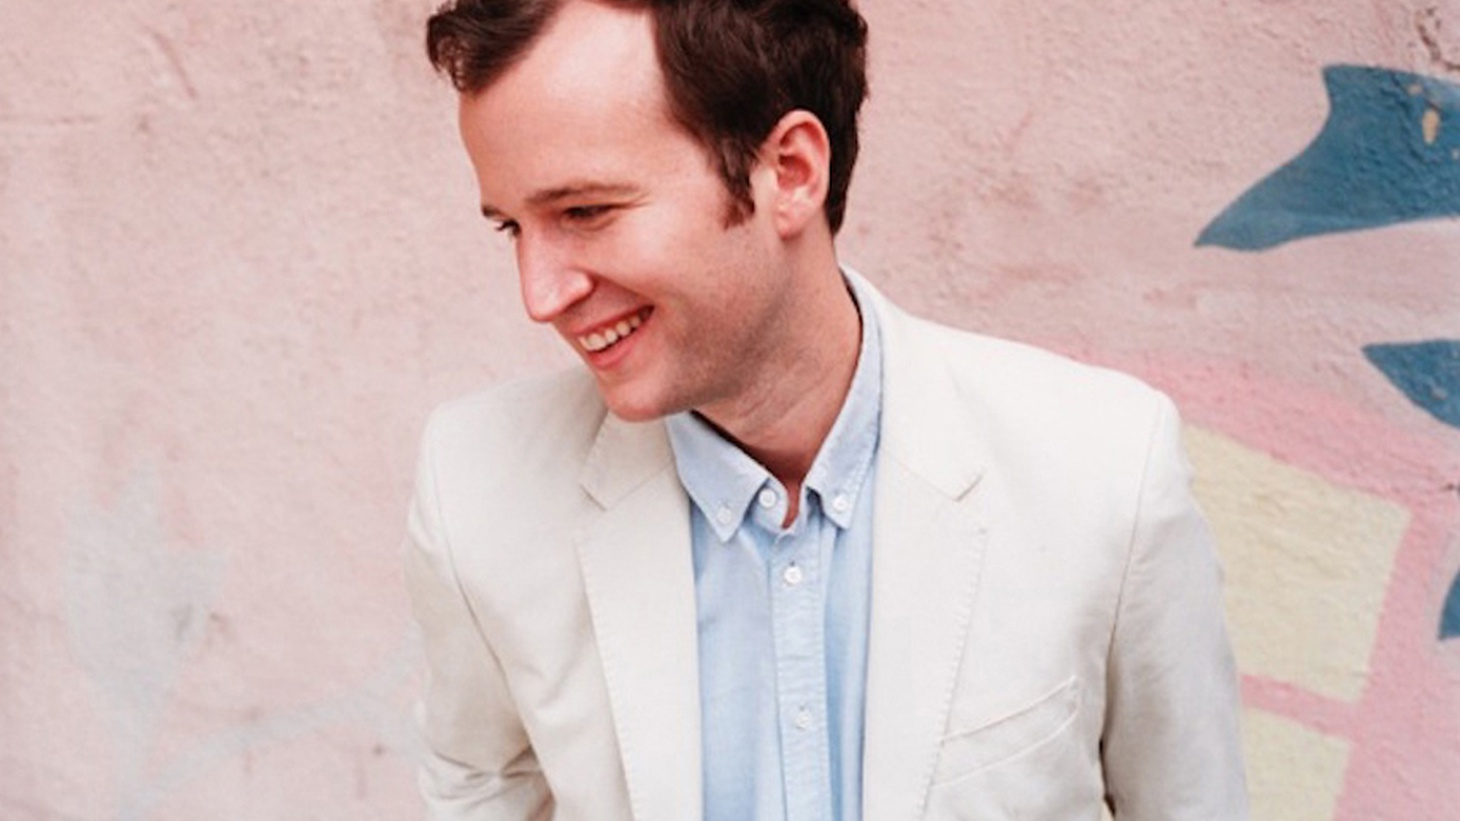 Vampire Weekend bassist Chris Baio is striking out on his own as Baio, with his solo debut full length due this Fall.